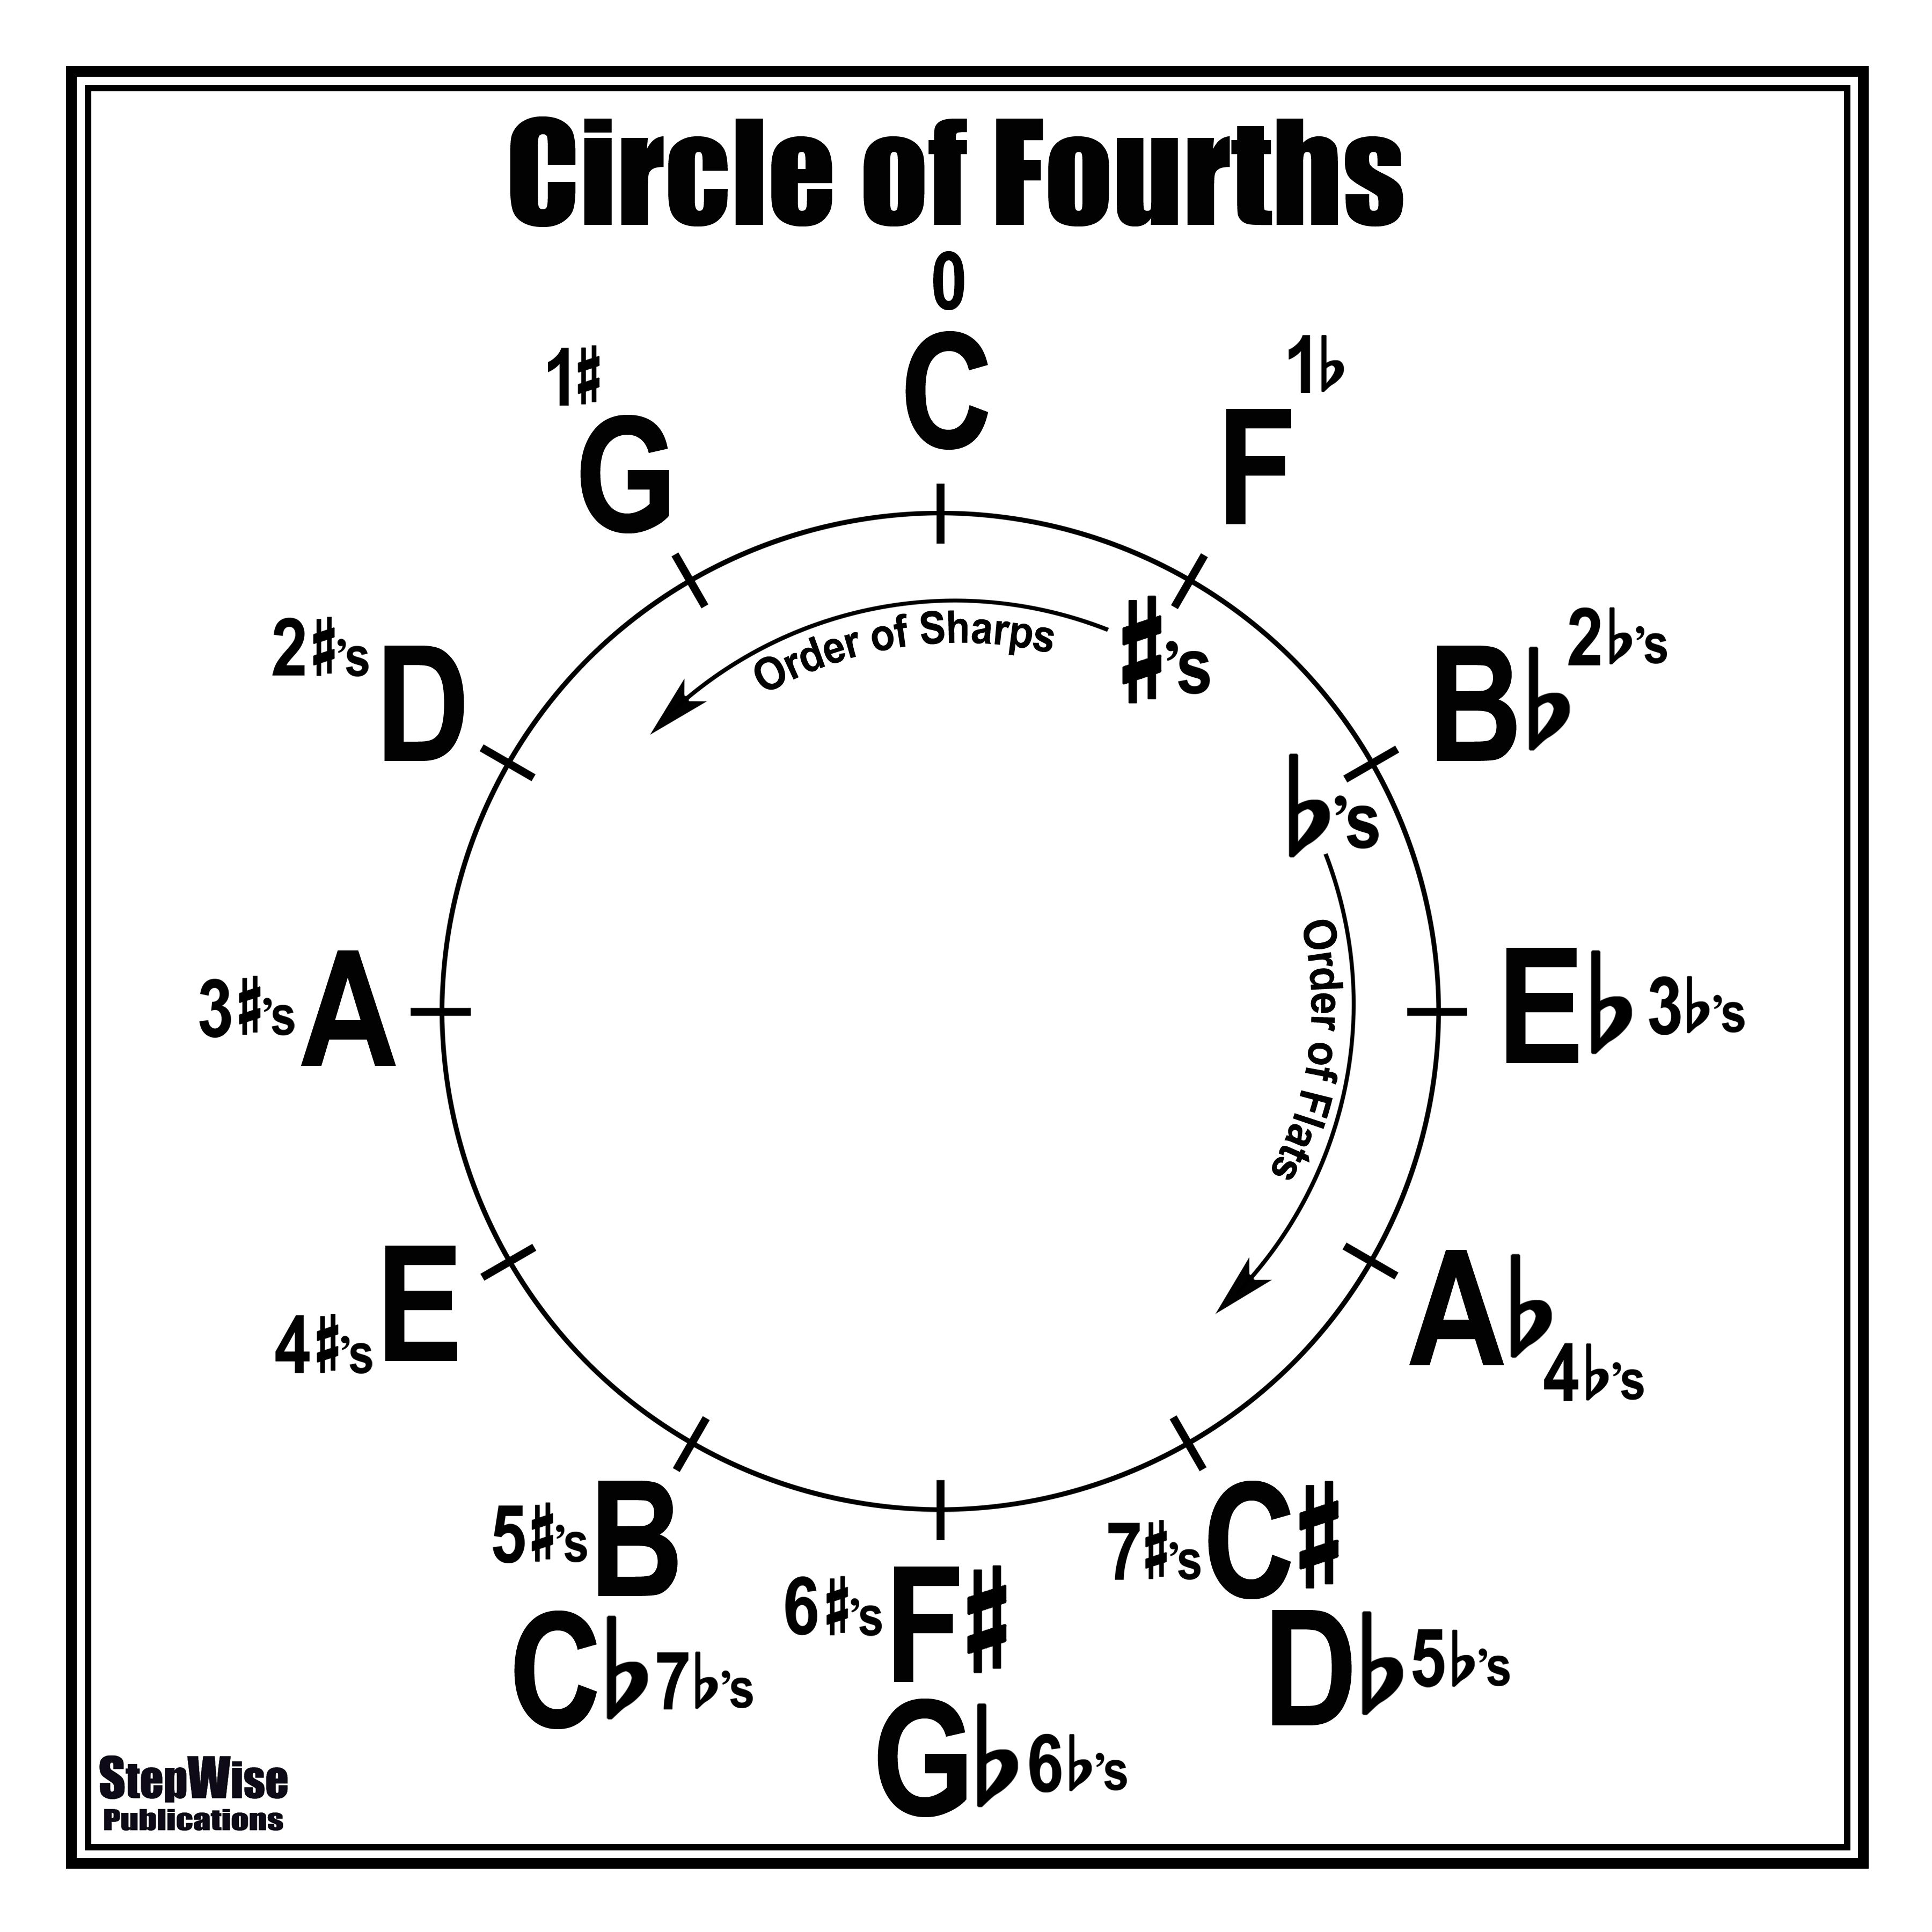 Circle Of Fourths Or 4ths